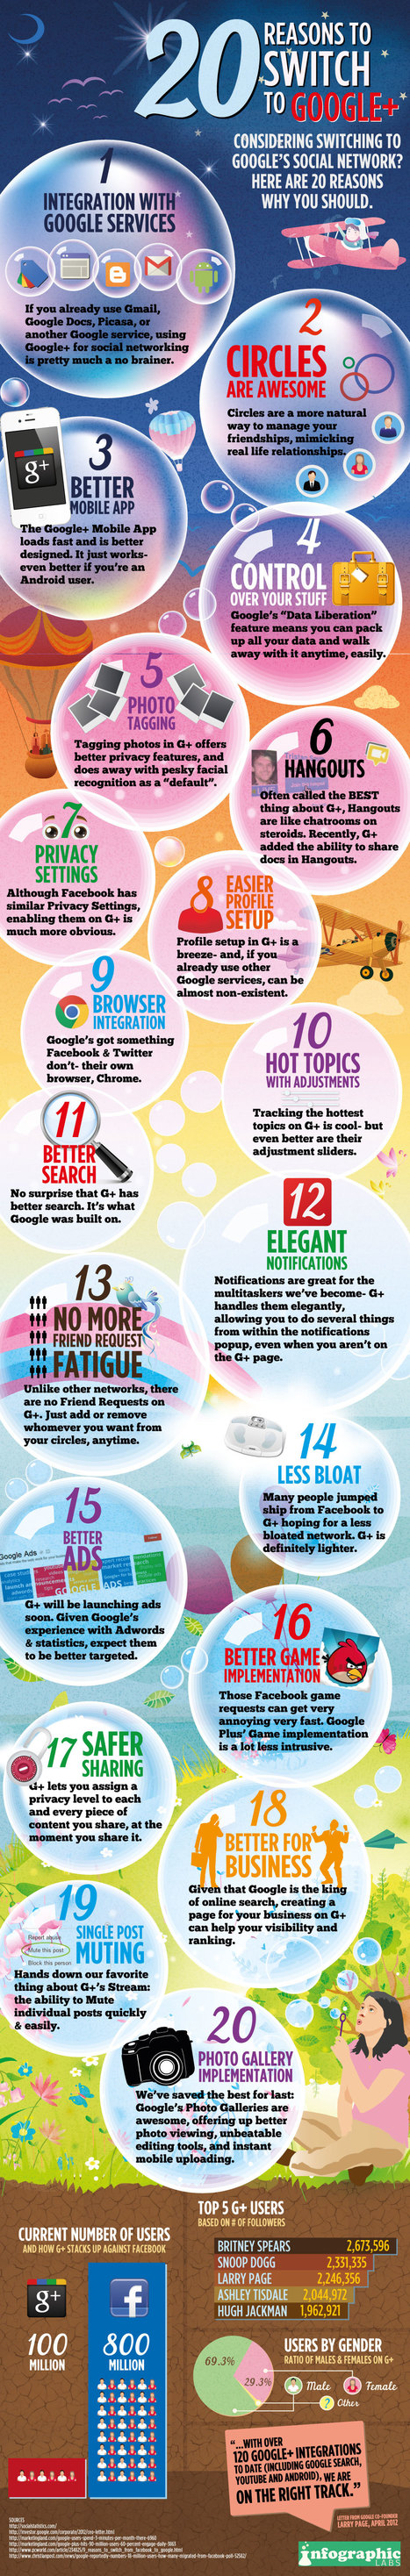 G+ The Most Disruptive Social Net: 20 Reasons Why You Should Be Using Google Plus [Infographic] | Collaborative Revolution | Scoop.it